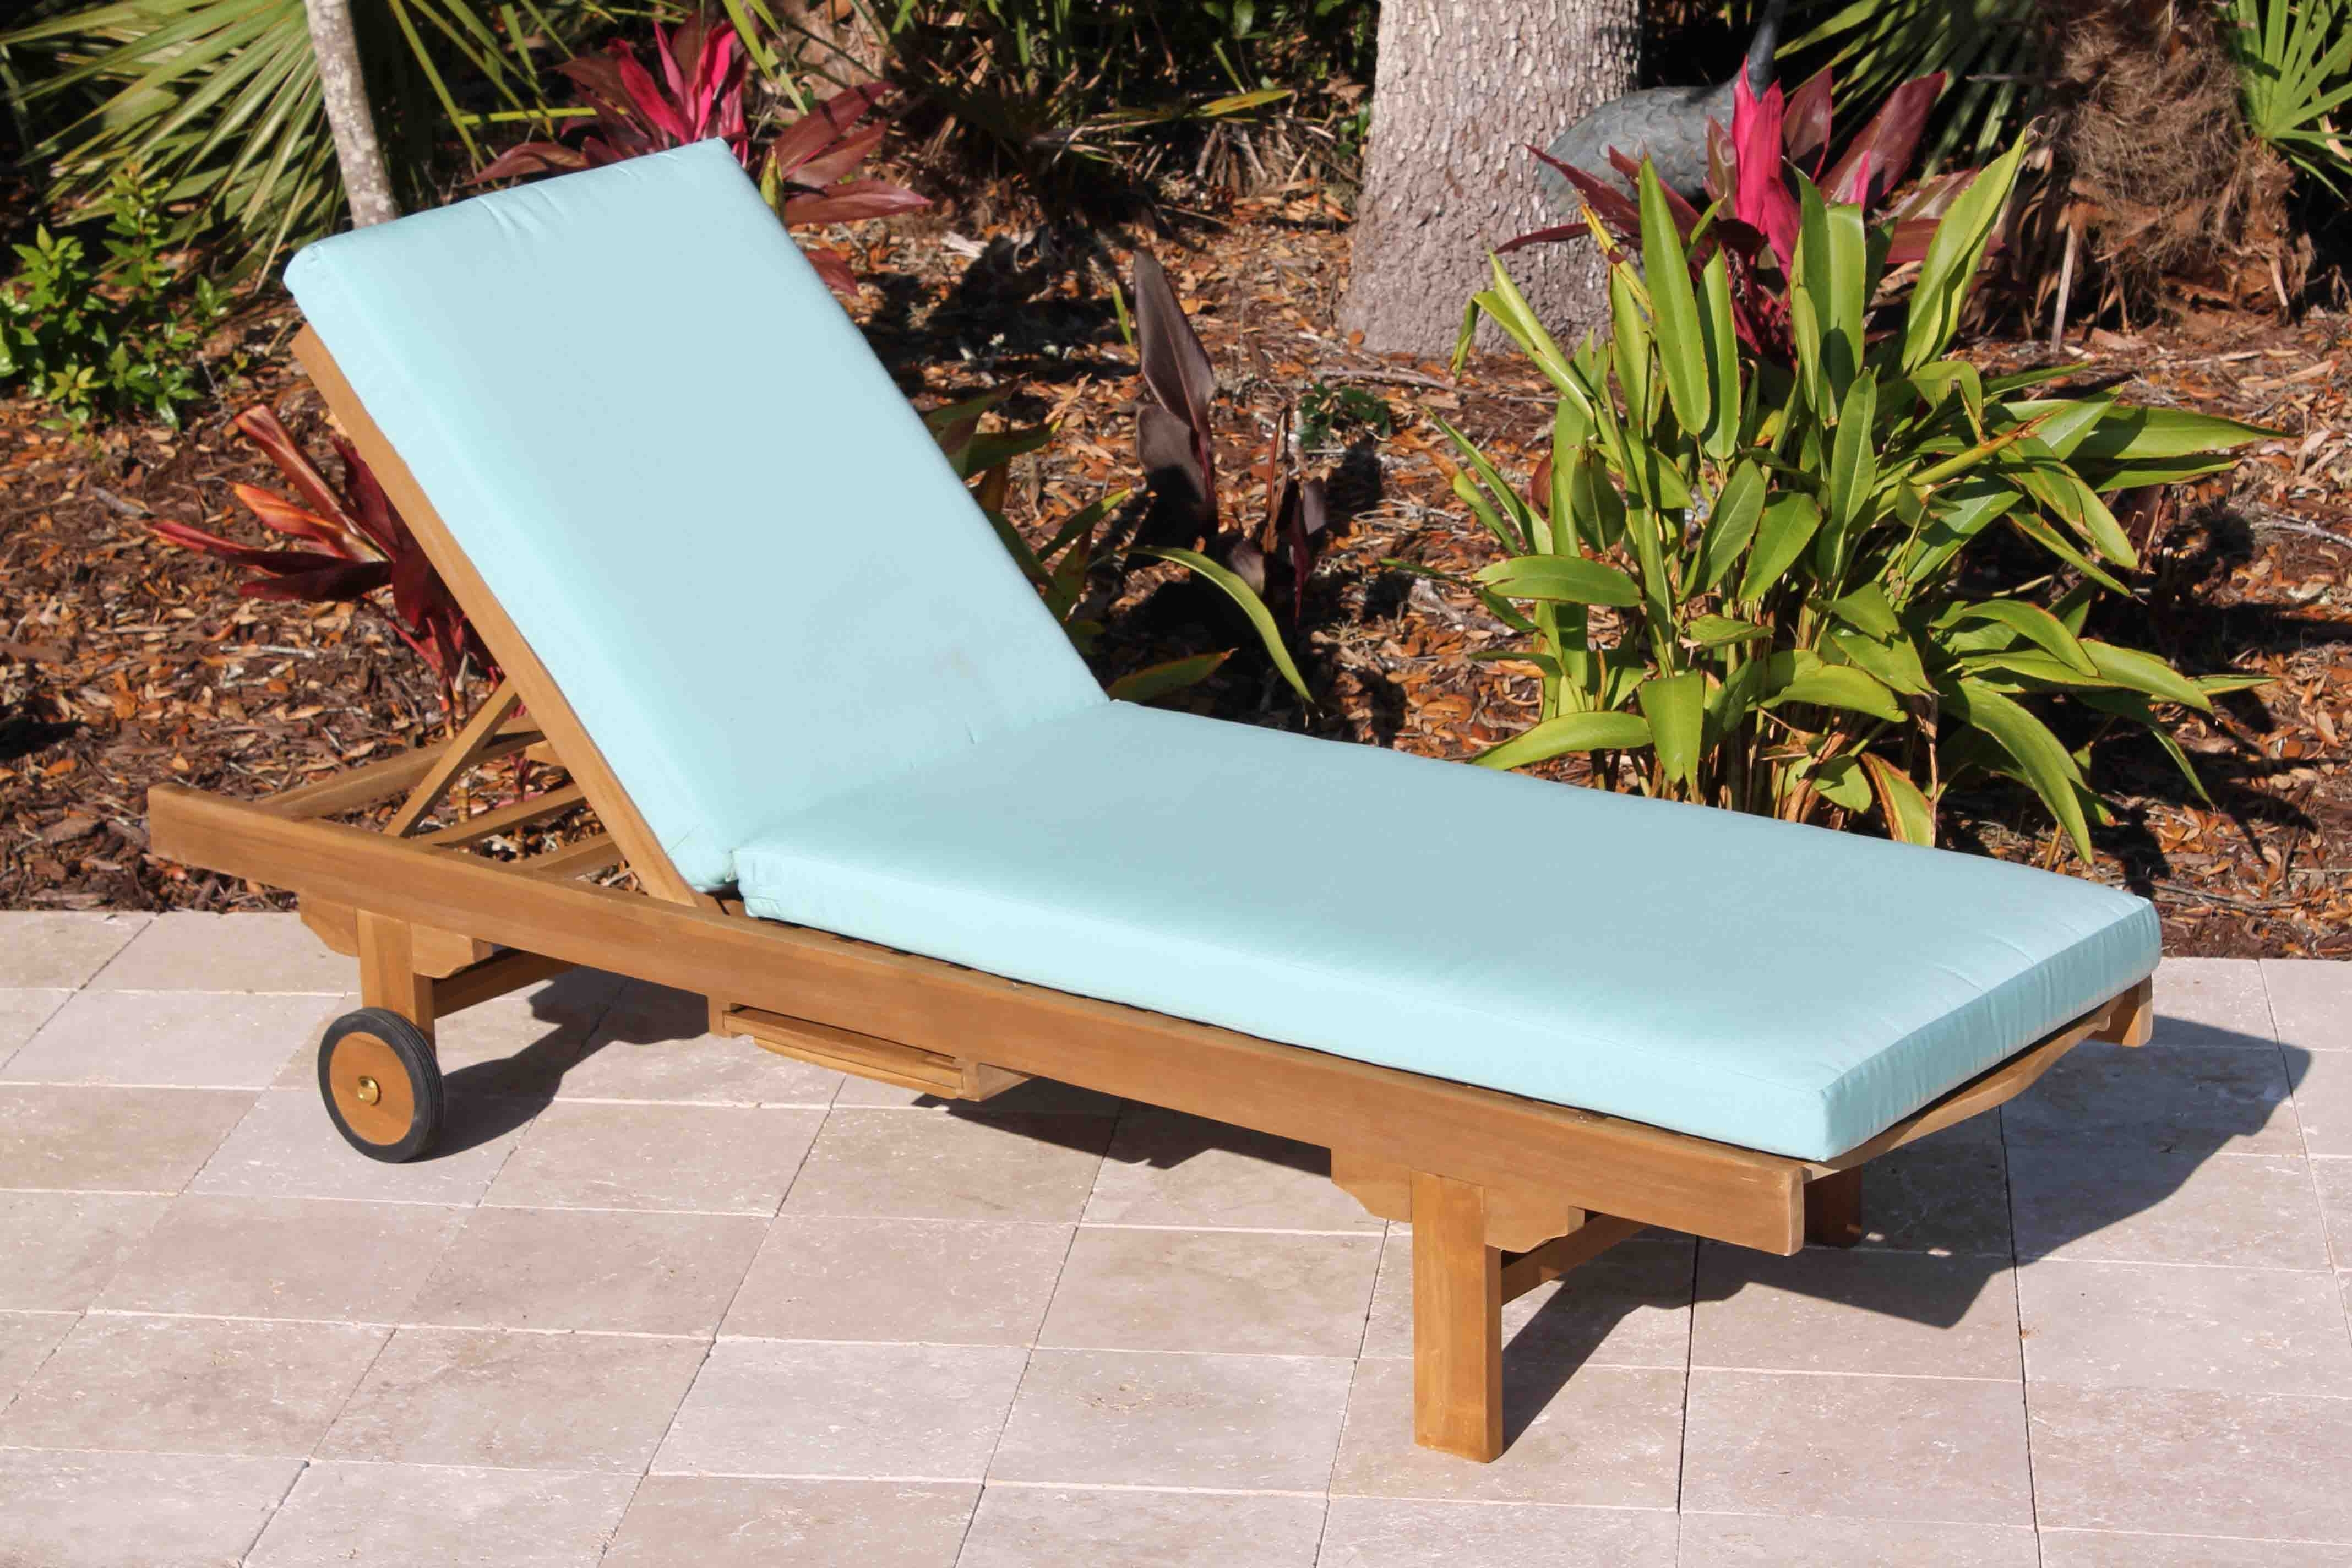 Aluminum Commercial Stack Chaise Lounge Sam S Club Intended For In Favorite Sam's Club Outdoor Chaise Lounge Chairs (View 2 of 15)